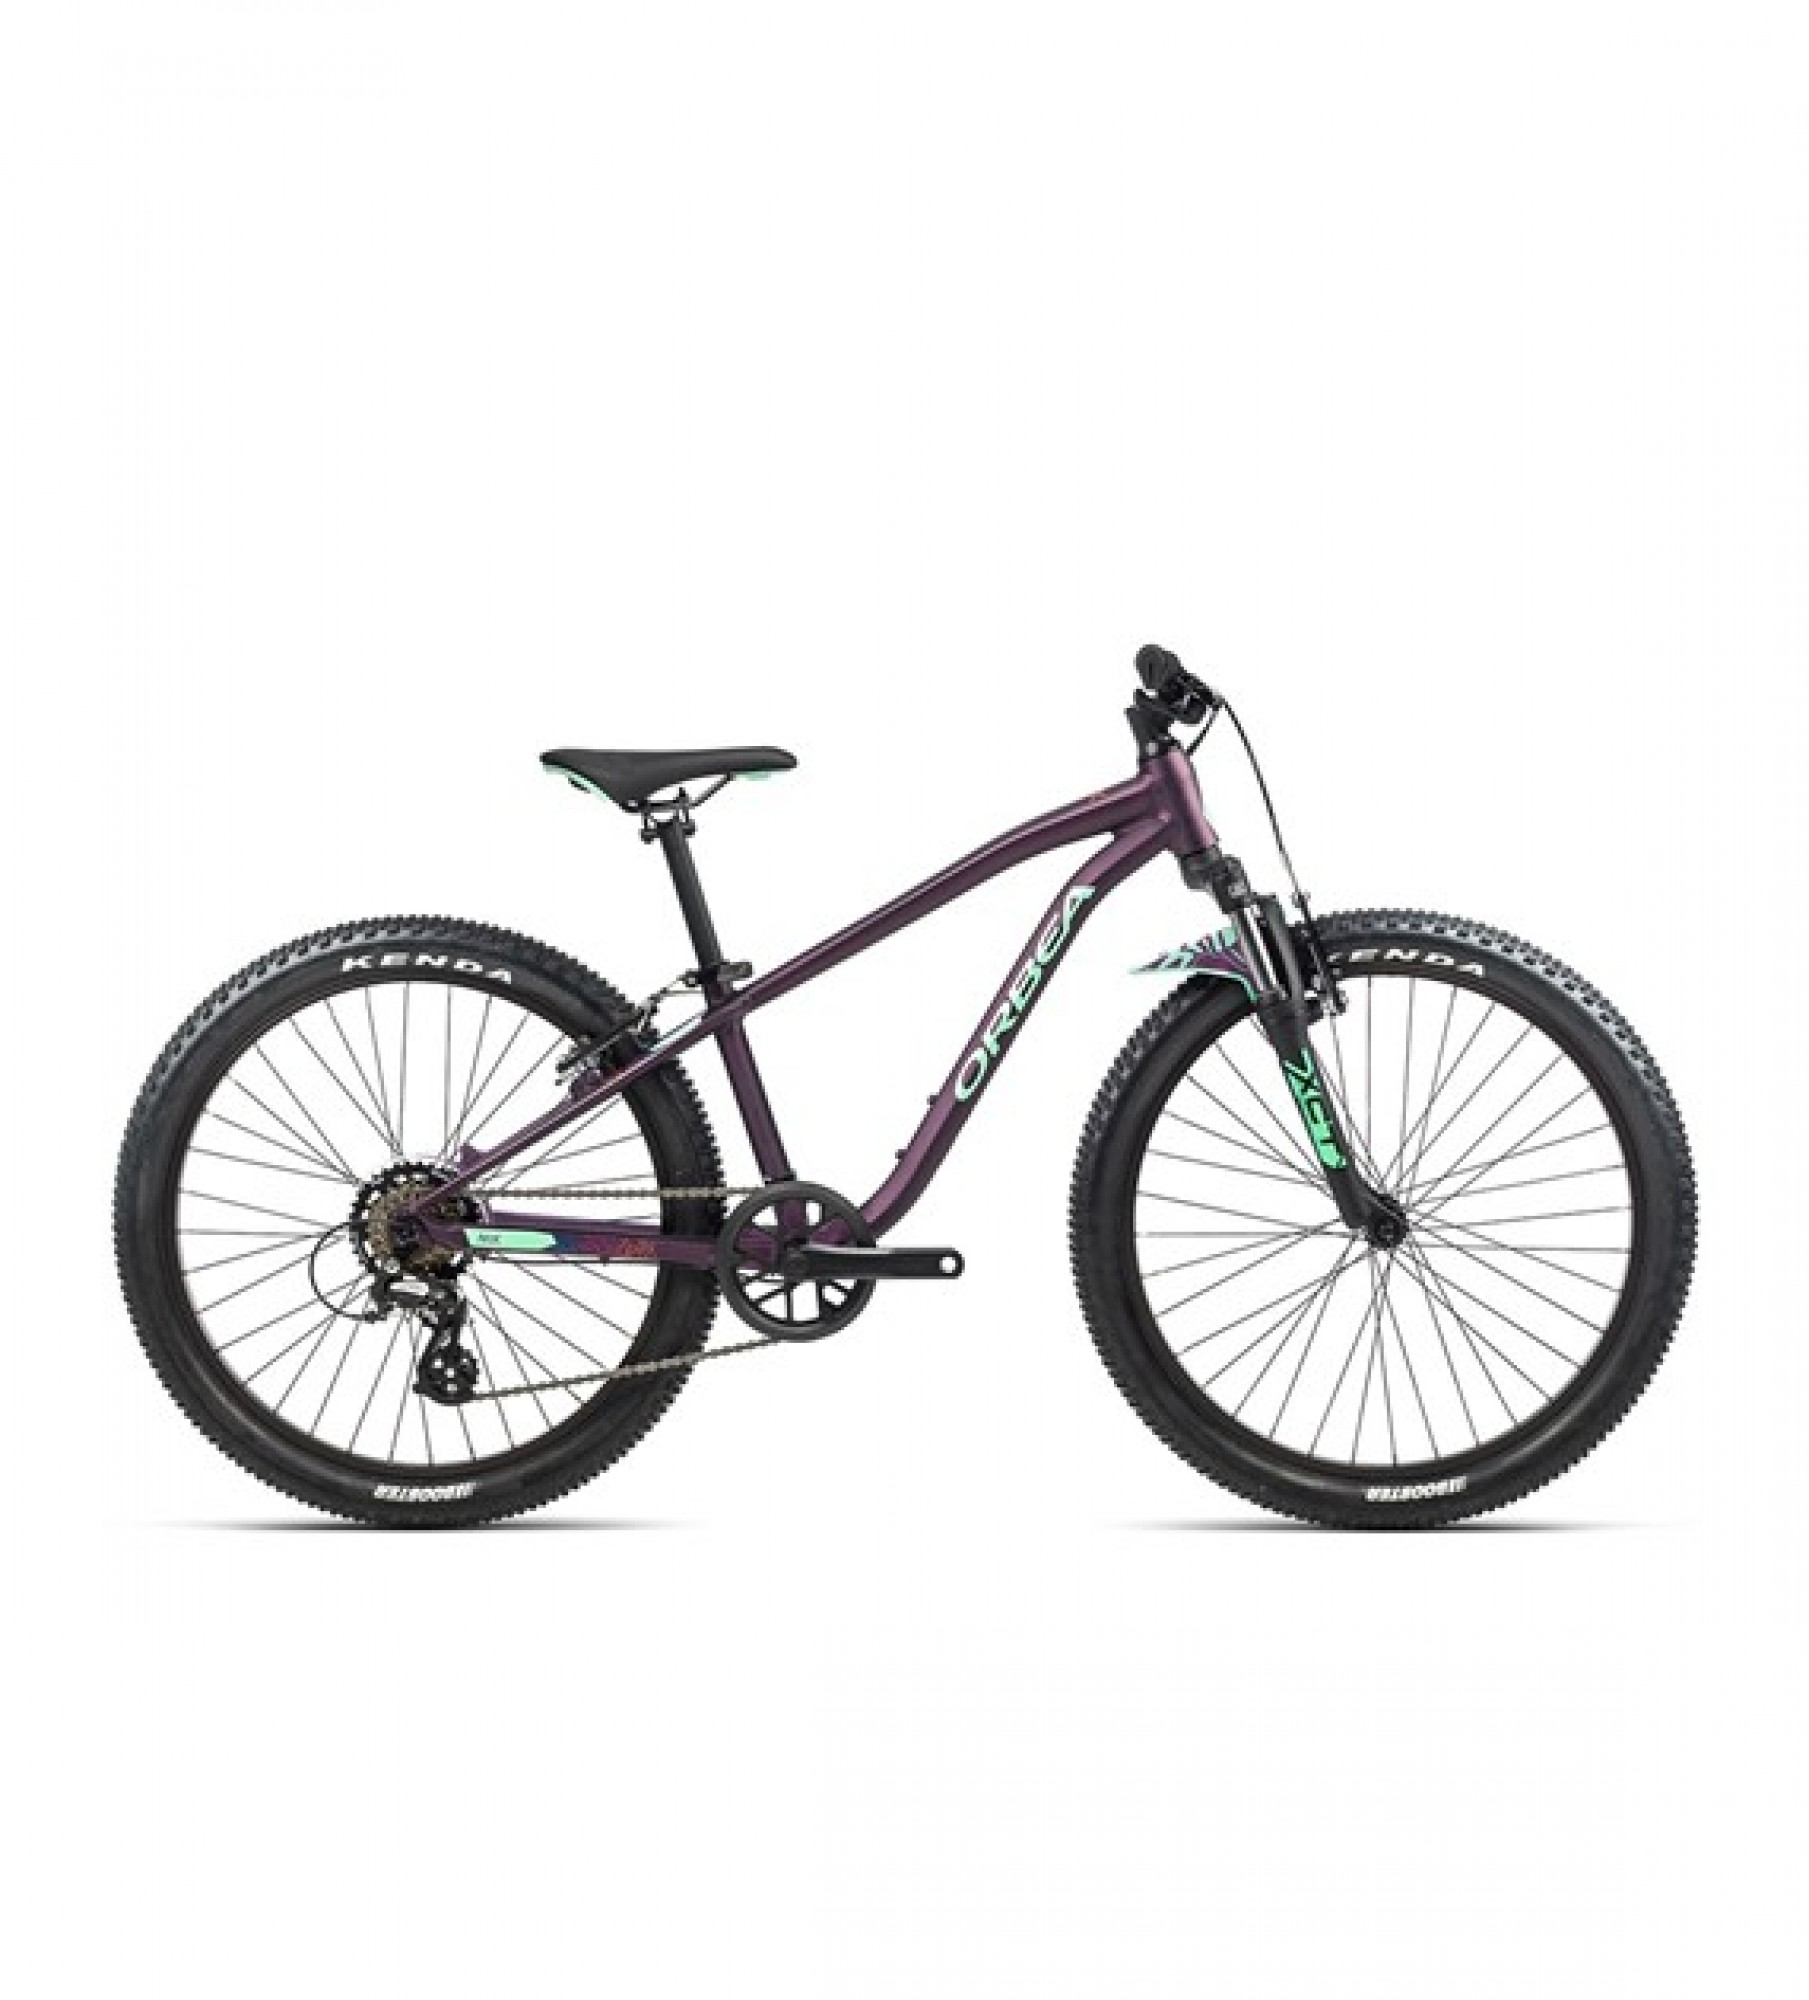 Rower Orbea MX 24 XC purple-mint